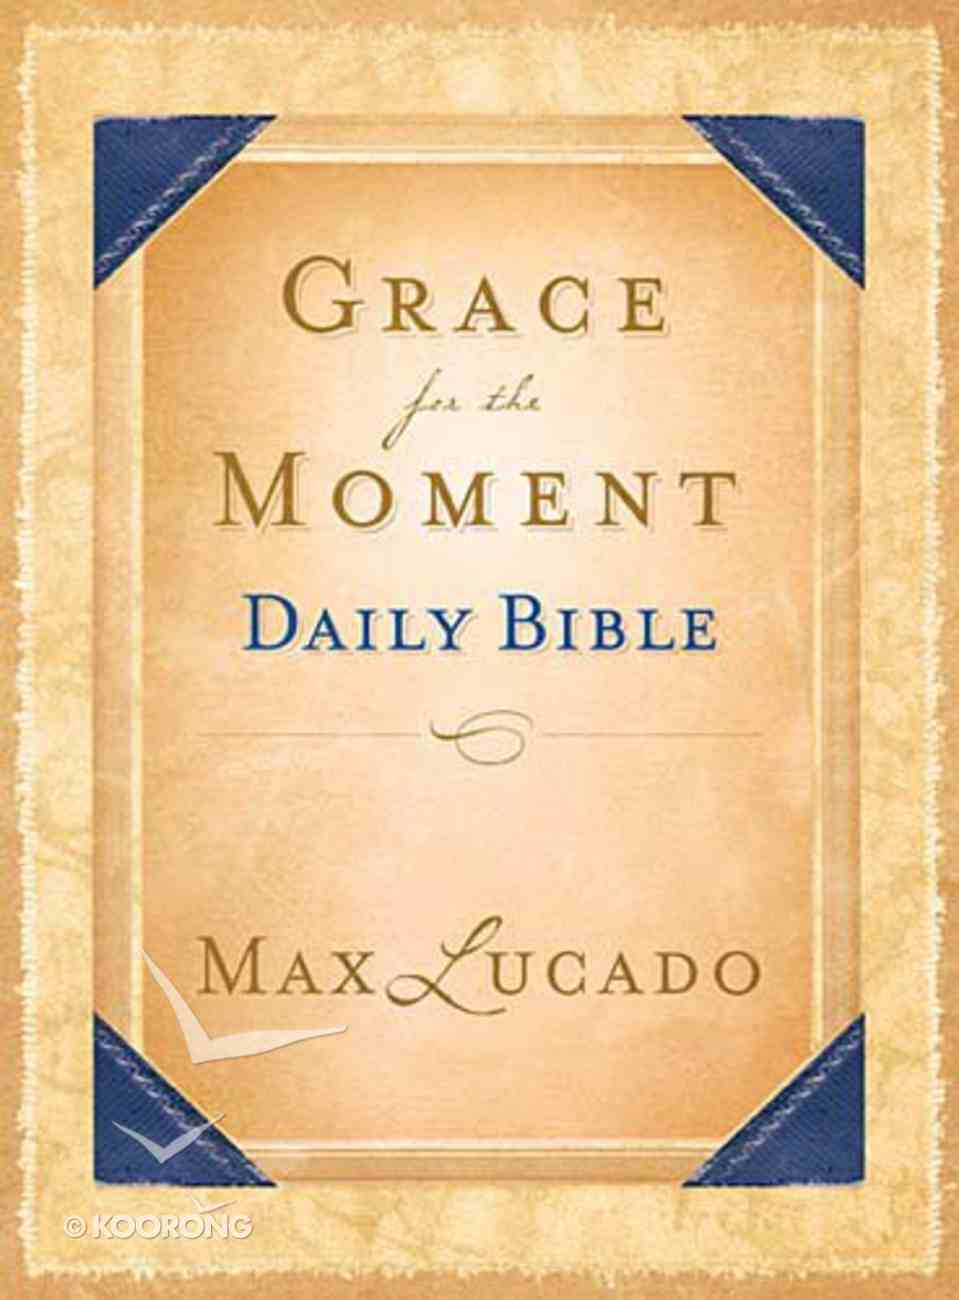 Ncv Grace For the Moment Paperback